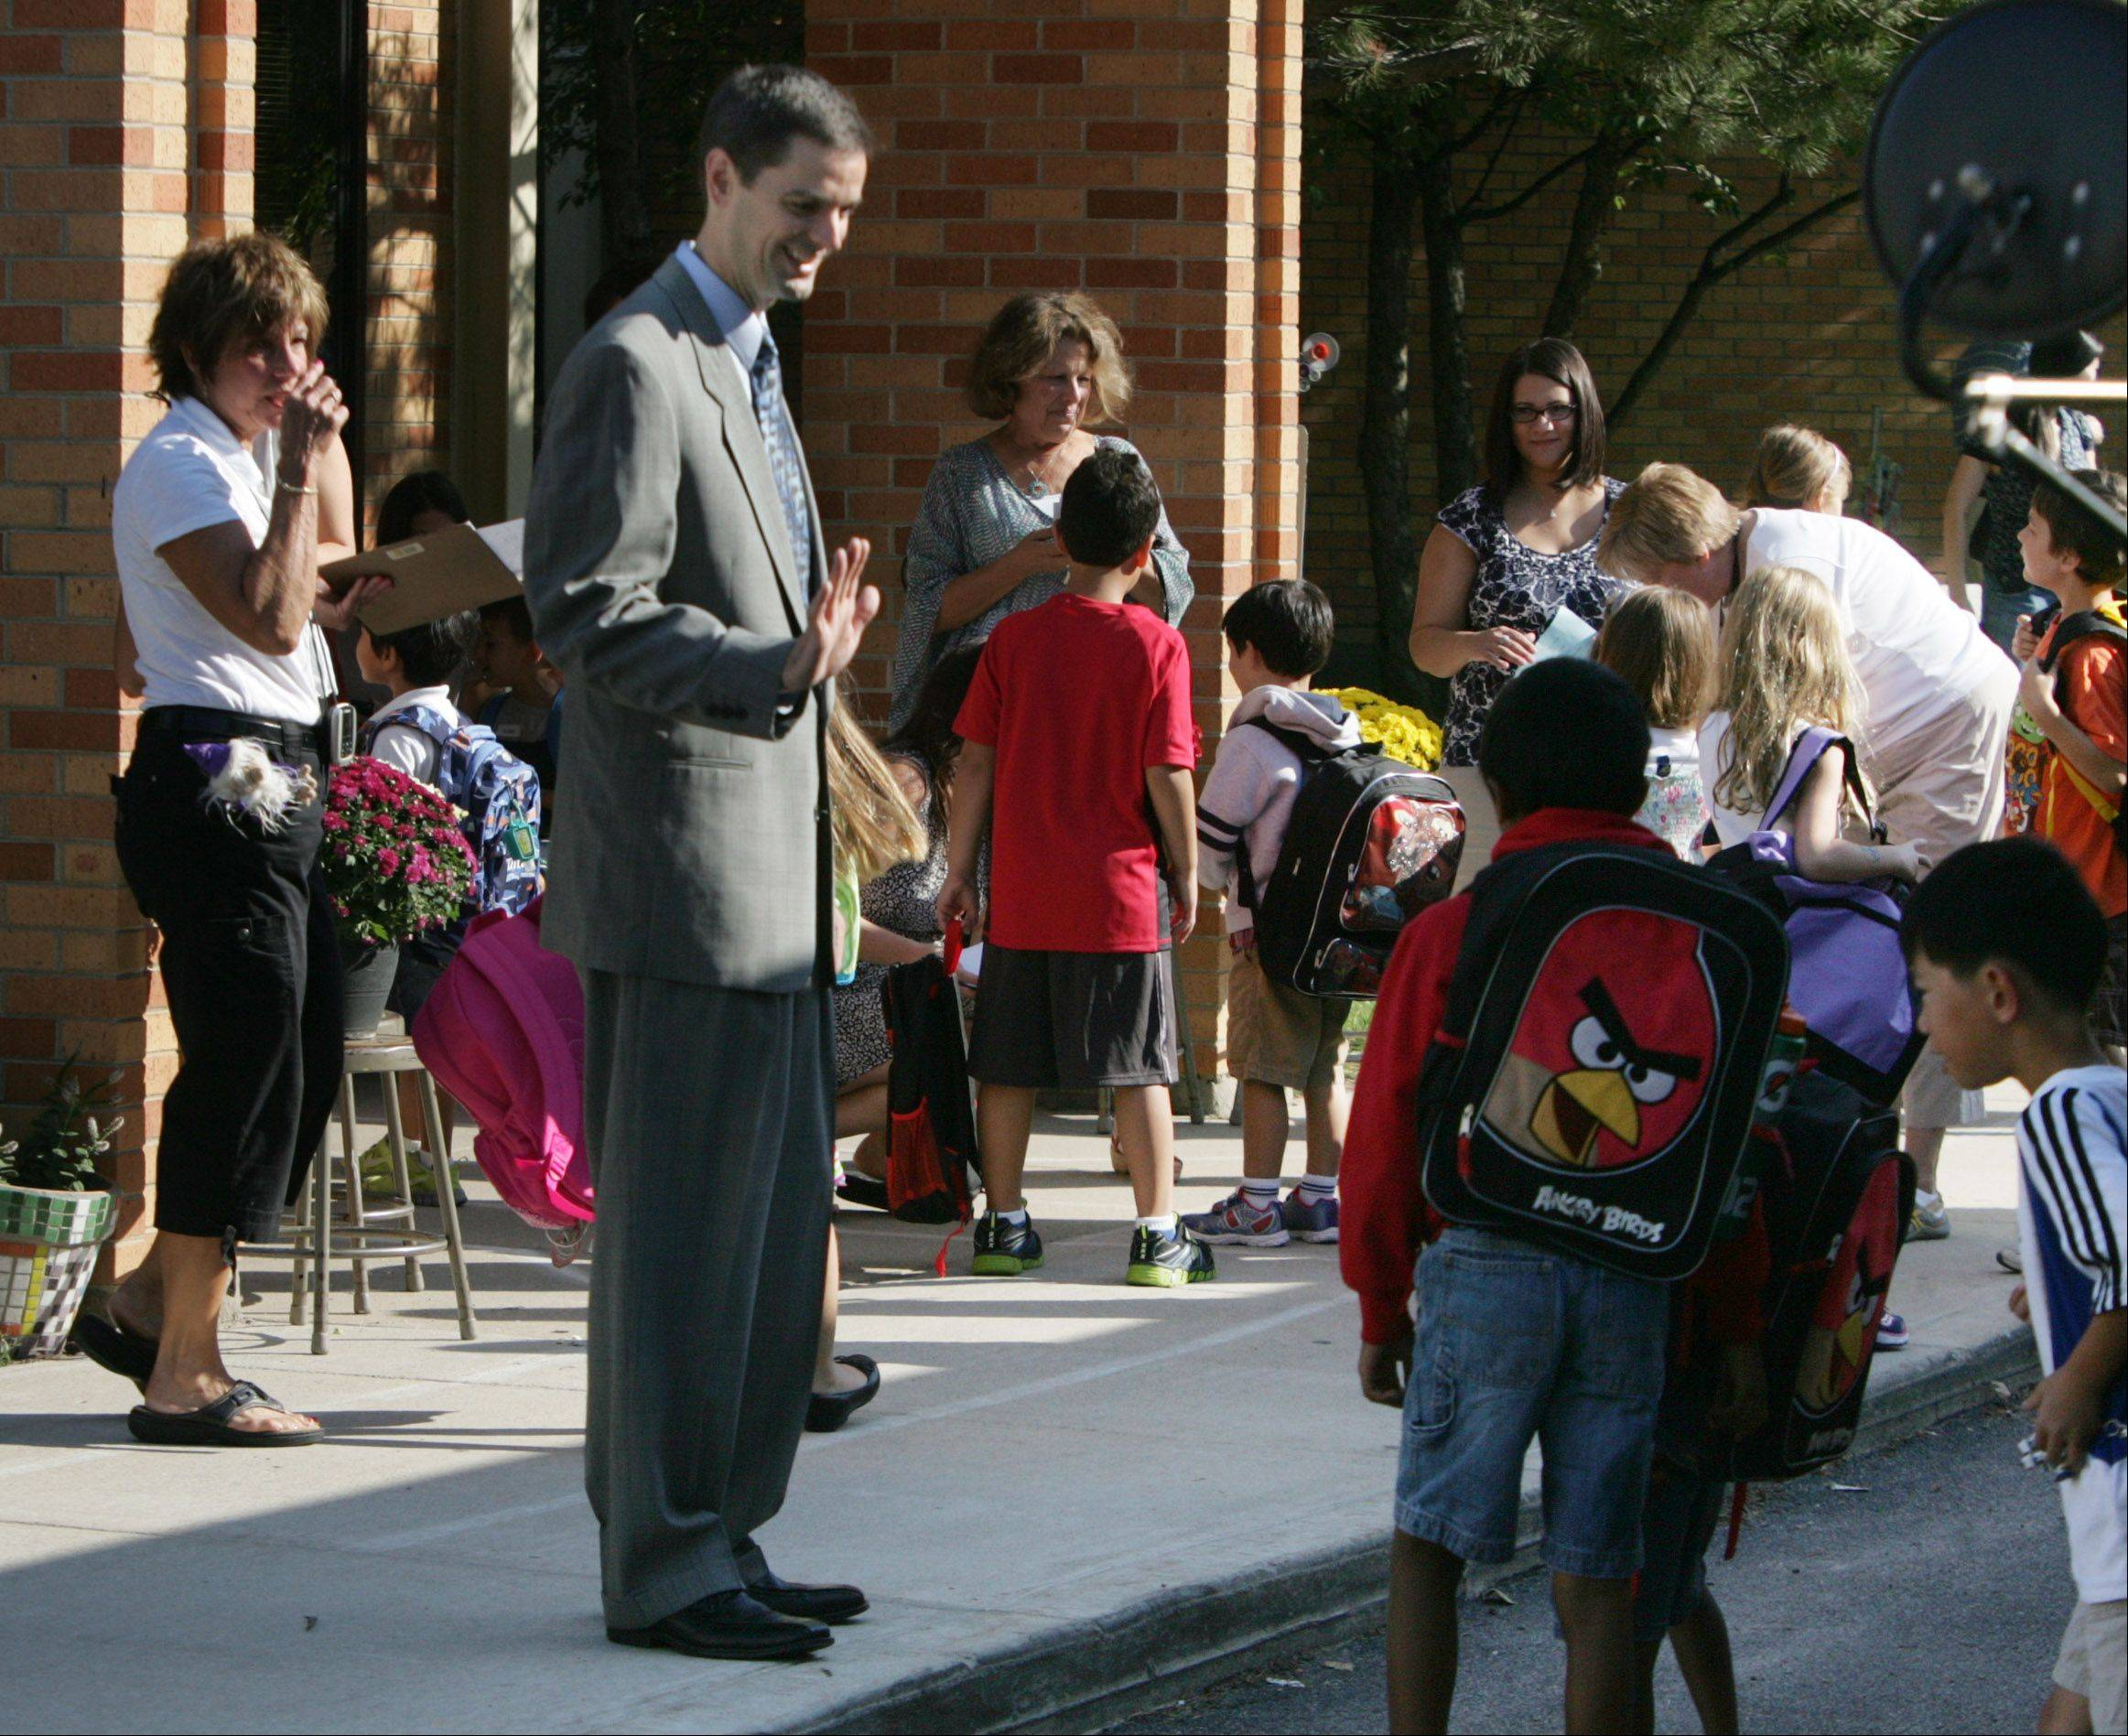 New superintendent Scott Warren greets children walking off the bus during the first day at Laura B. Sprague School in Lincolnshire Wednesday. Warren is the superintendent for the Lincolnshire-Prairie View School District 103.